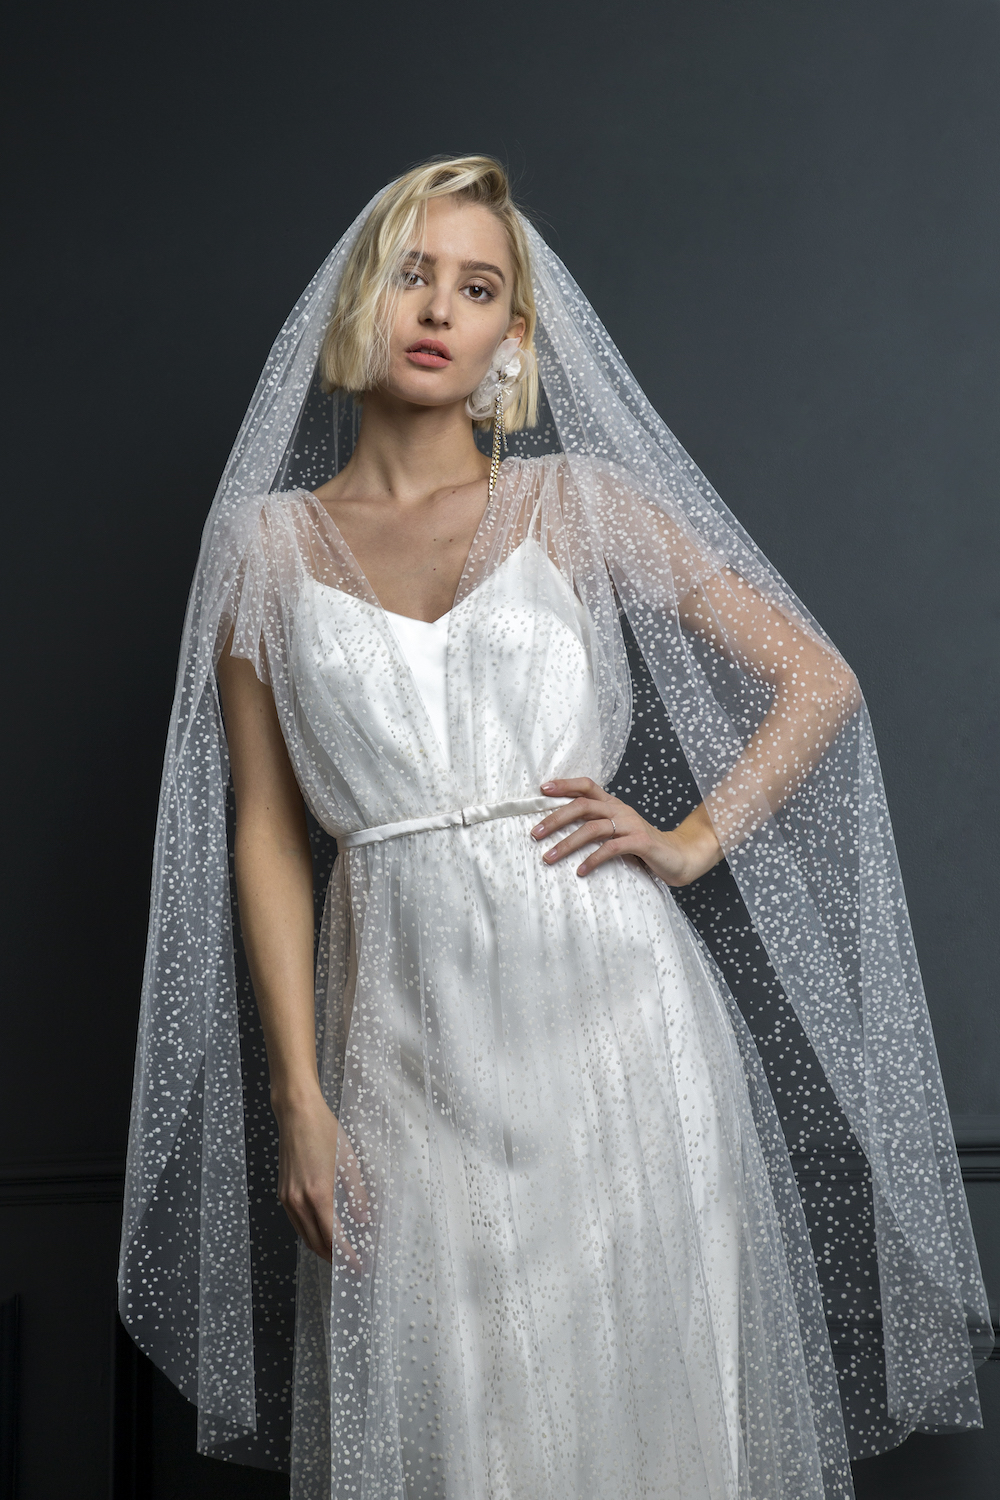 ZIGGY DRESS & FLOCKED SPOT VEIL | WEDDING DRESS BY HALFPENNY LONDON